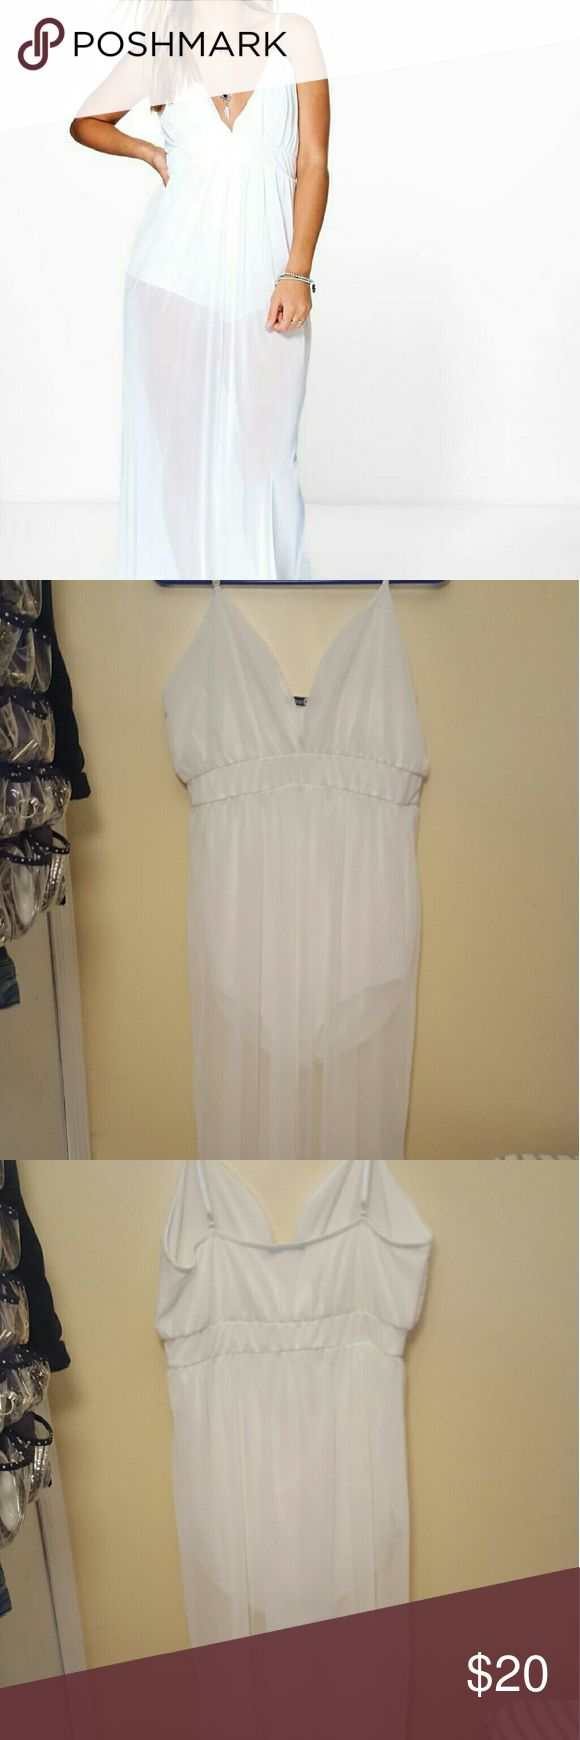 Plus White Sheer Maxi Dress White Sheer Maxi Dress with White Under Shorts attached. 95% Polyester 5% Elastane Boohoo Dresses Maxi